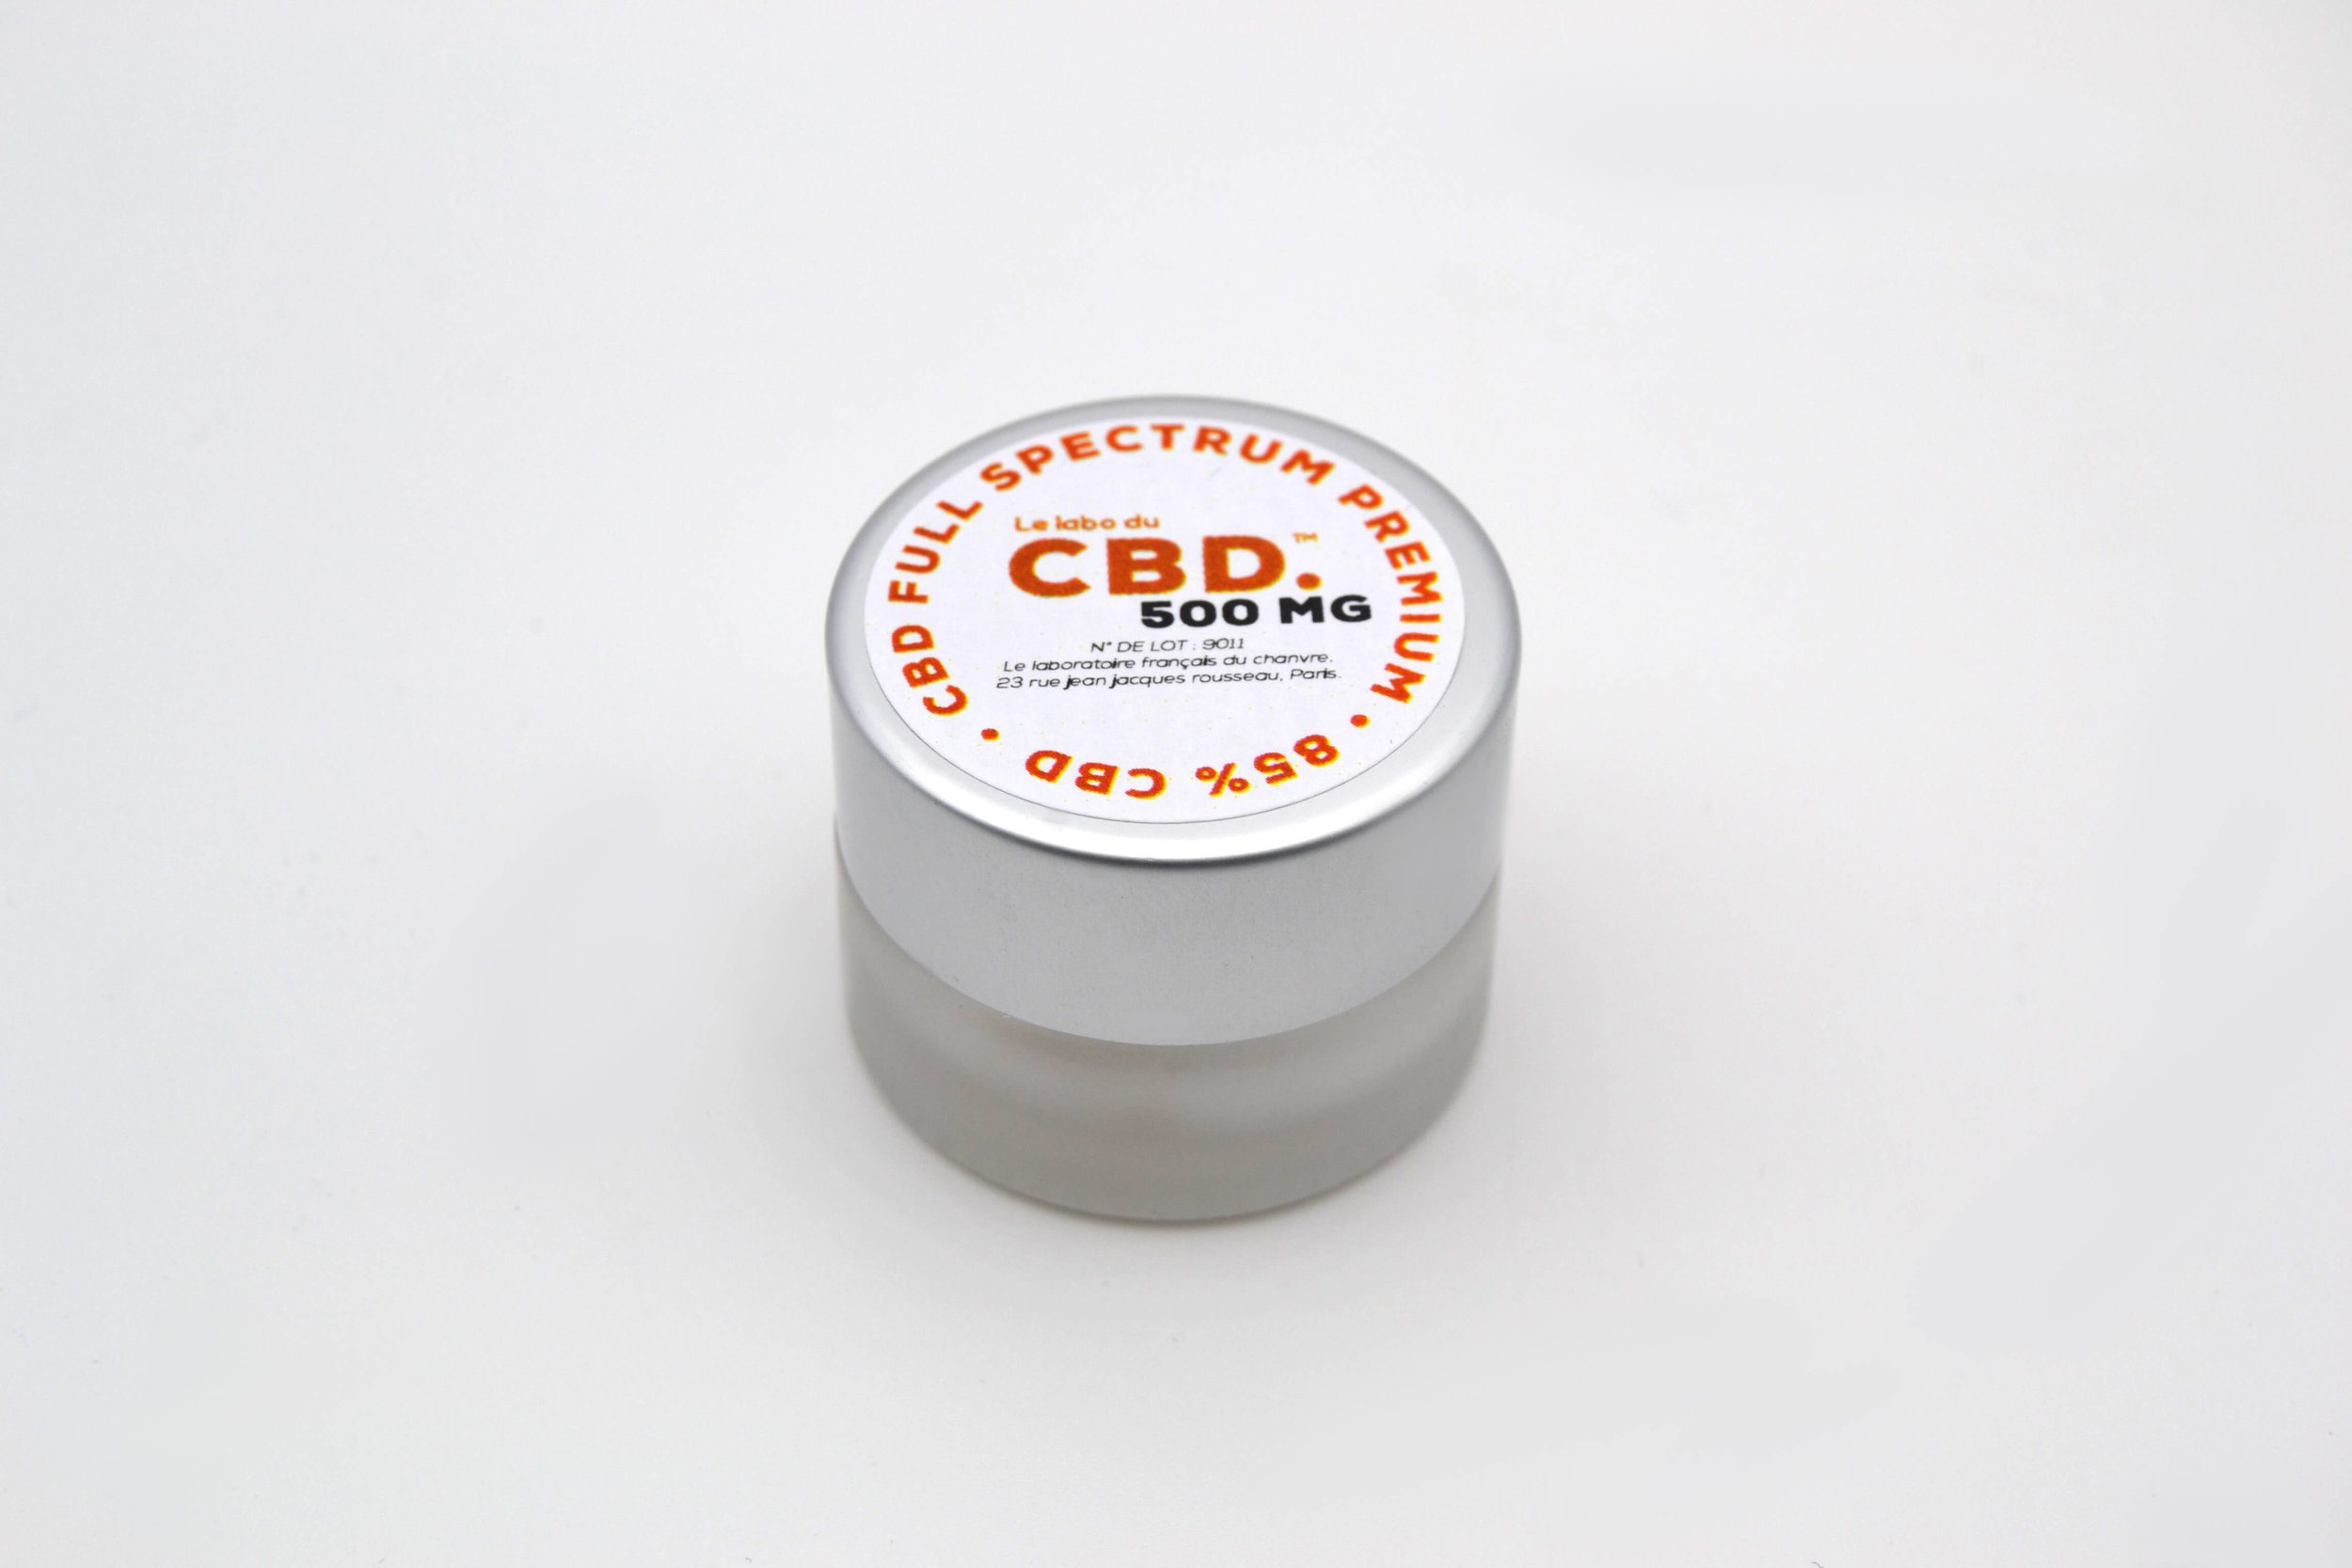 Wax CBD (copie)